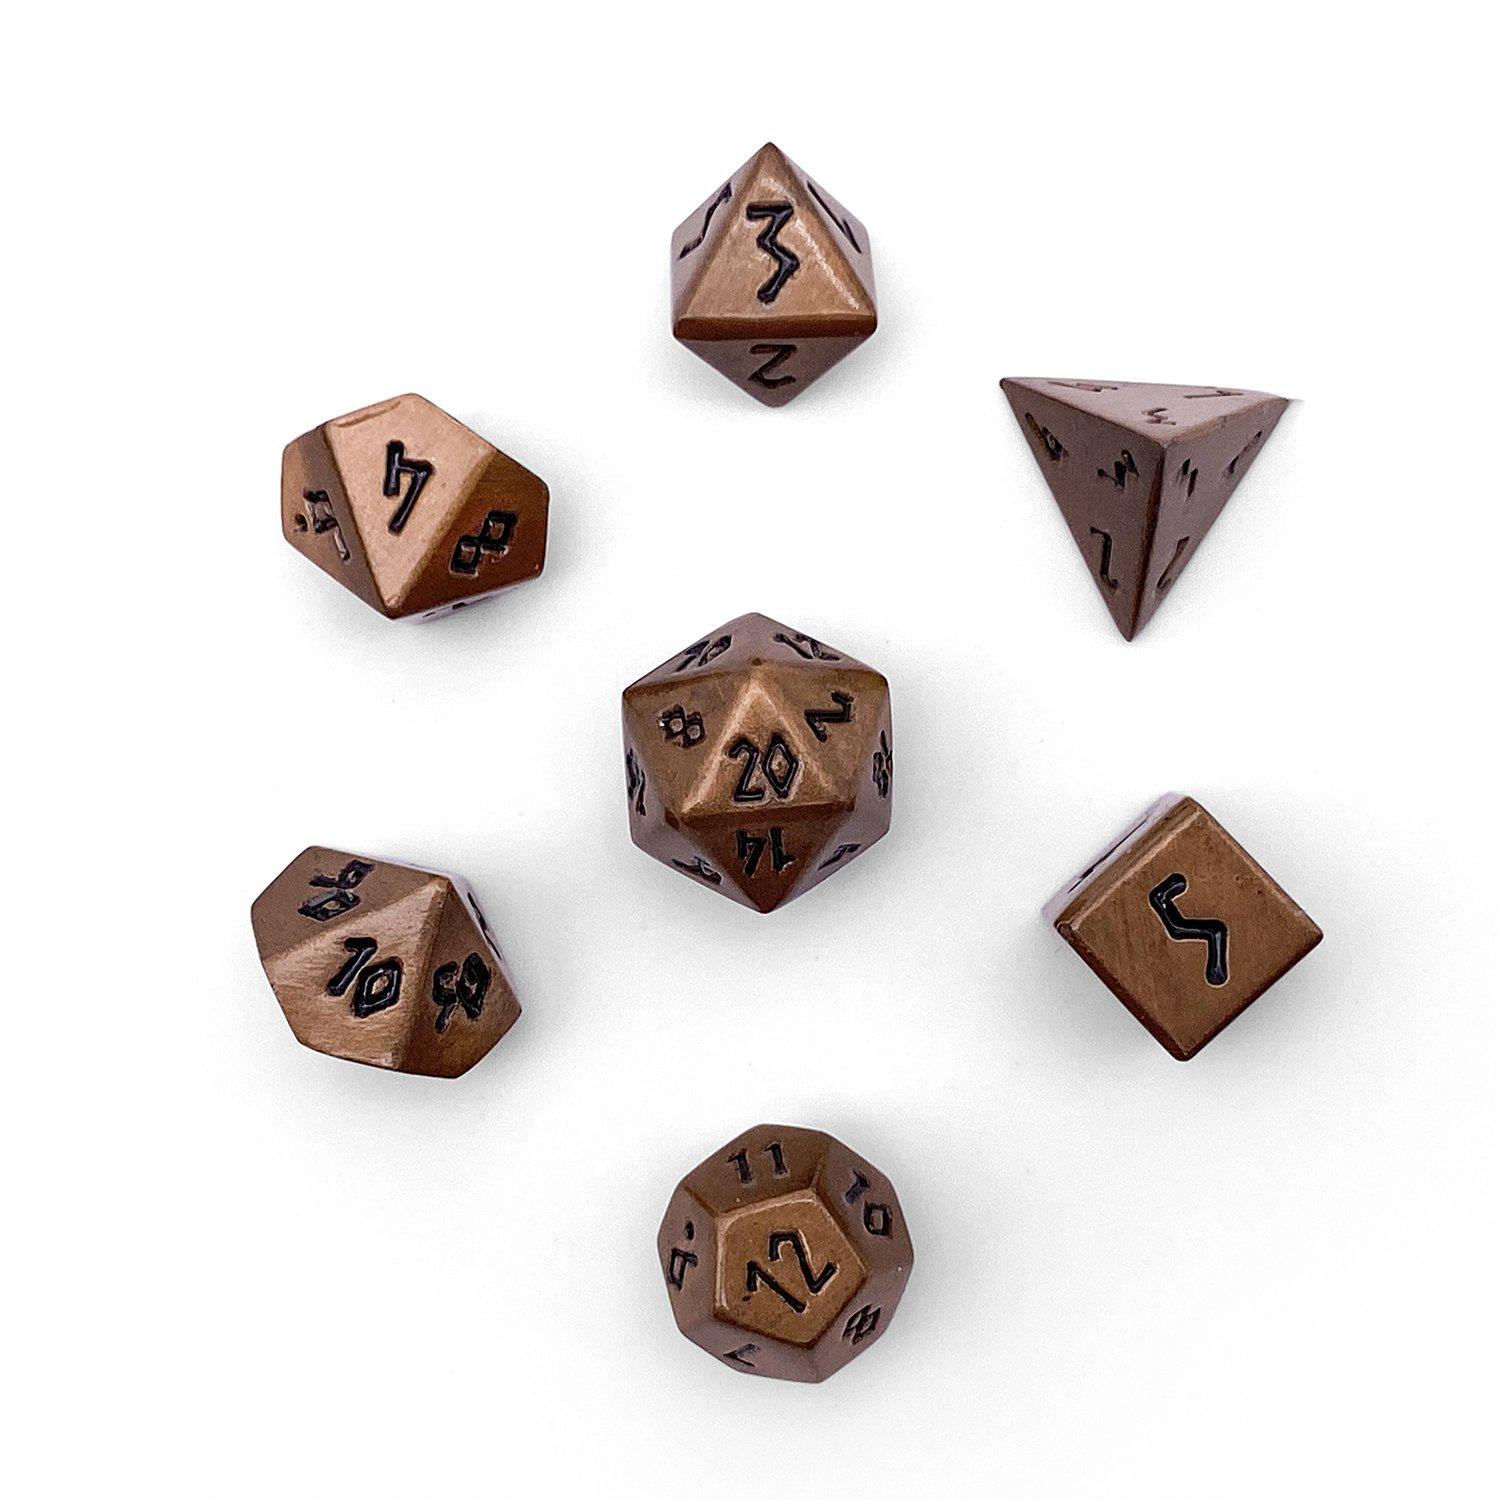 Gnomish Copper Pebble ™ Dice - 10mm Alloy Mini Polyhedral Dice Set